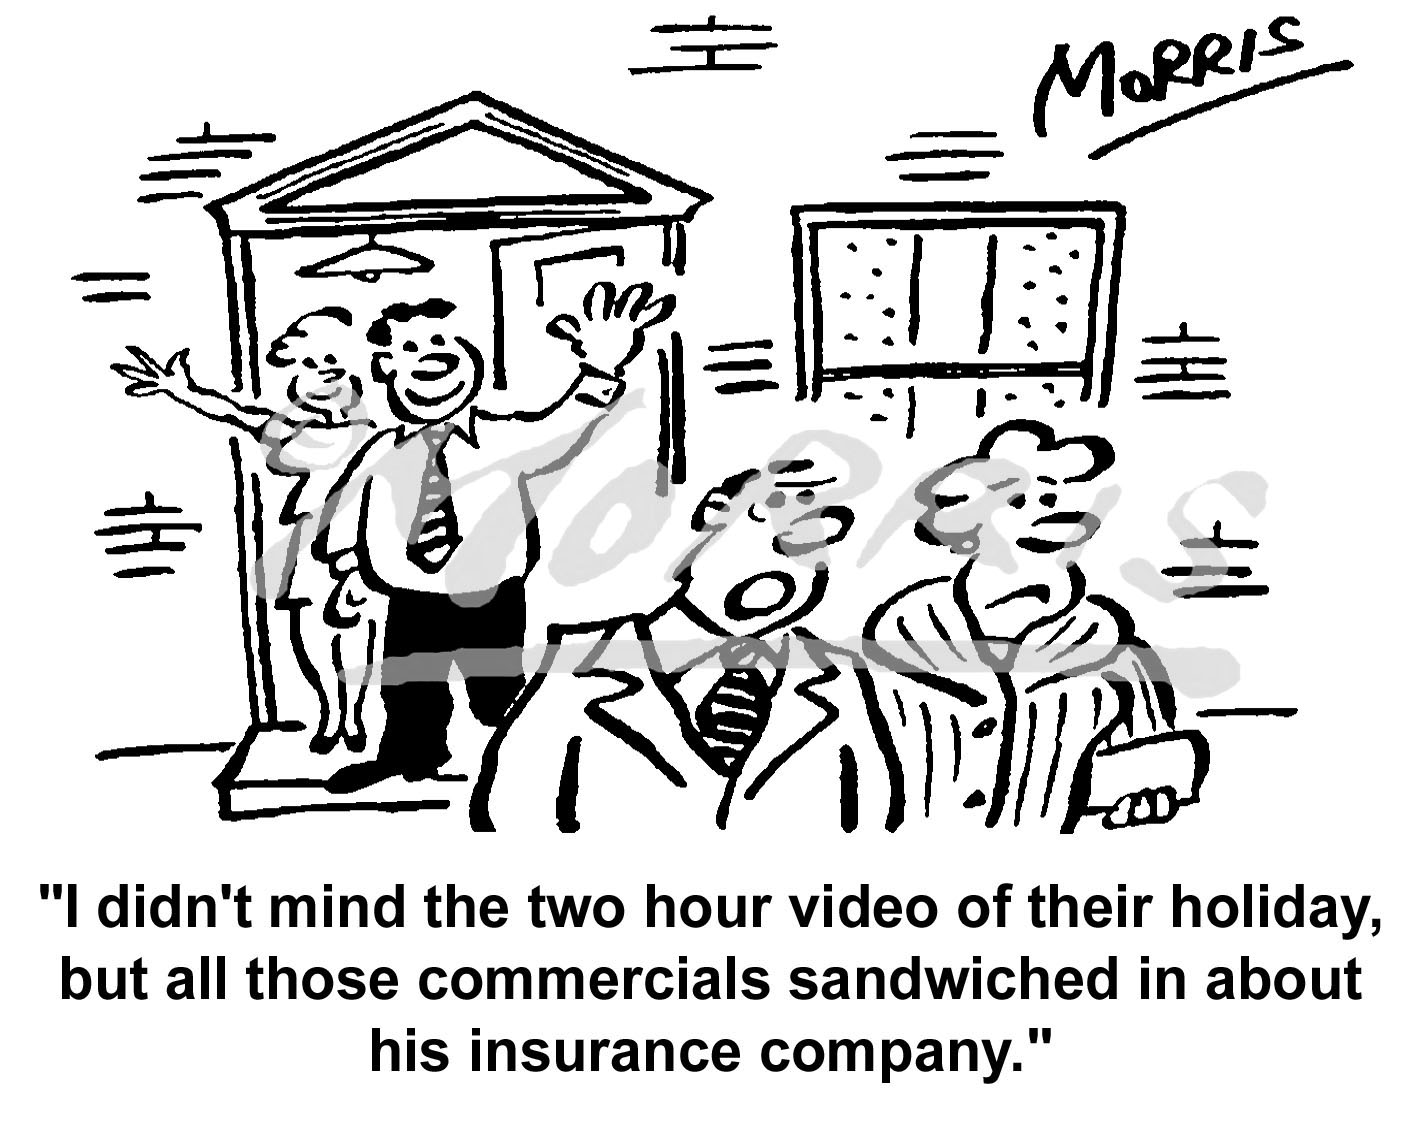 Insurance company business cartoon Ref: 4680bw